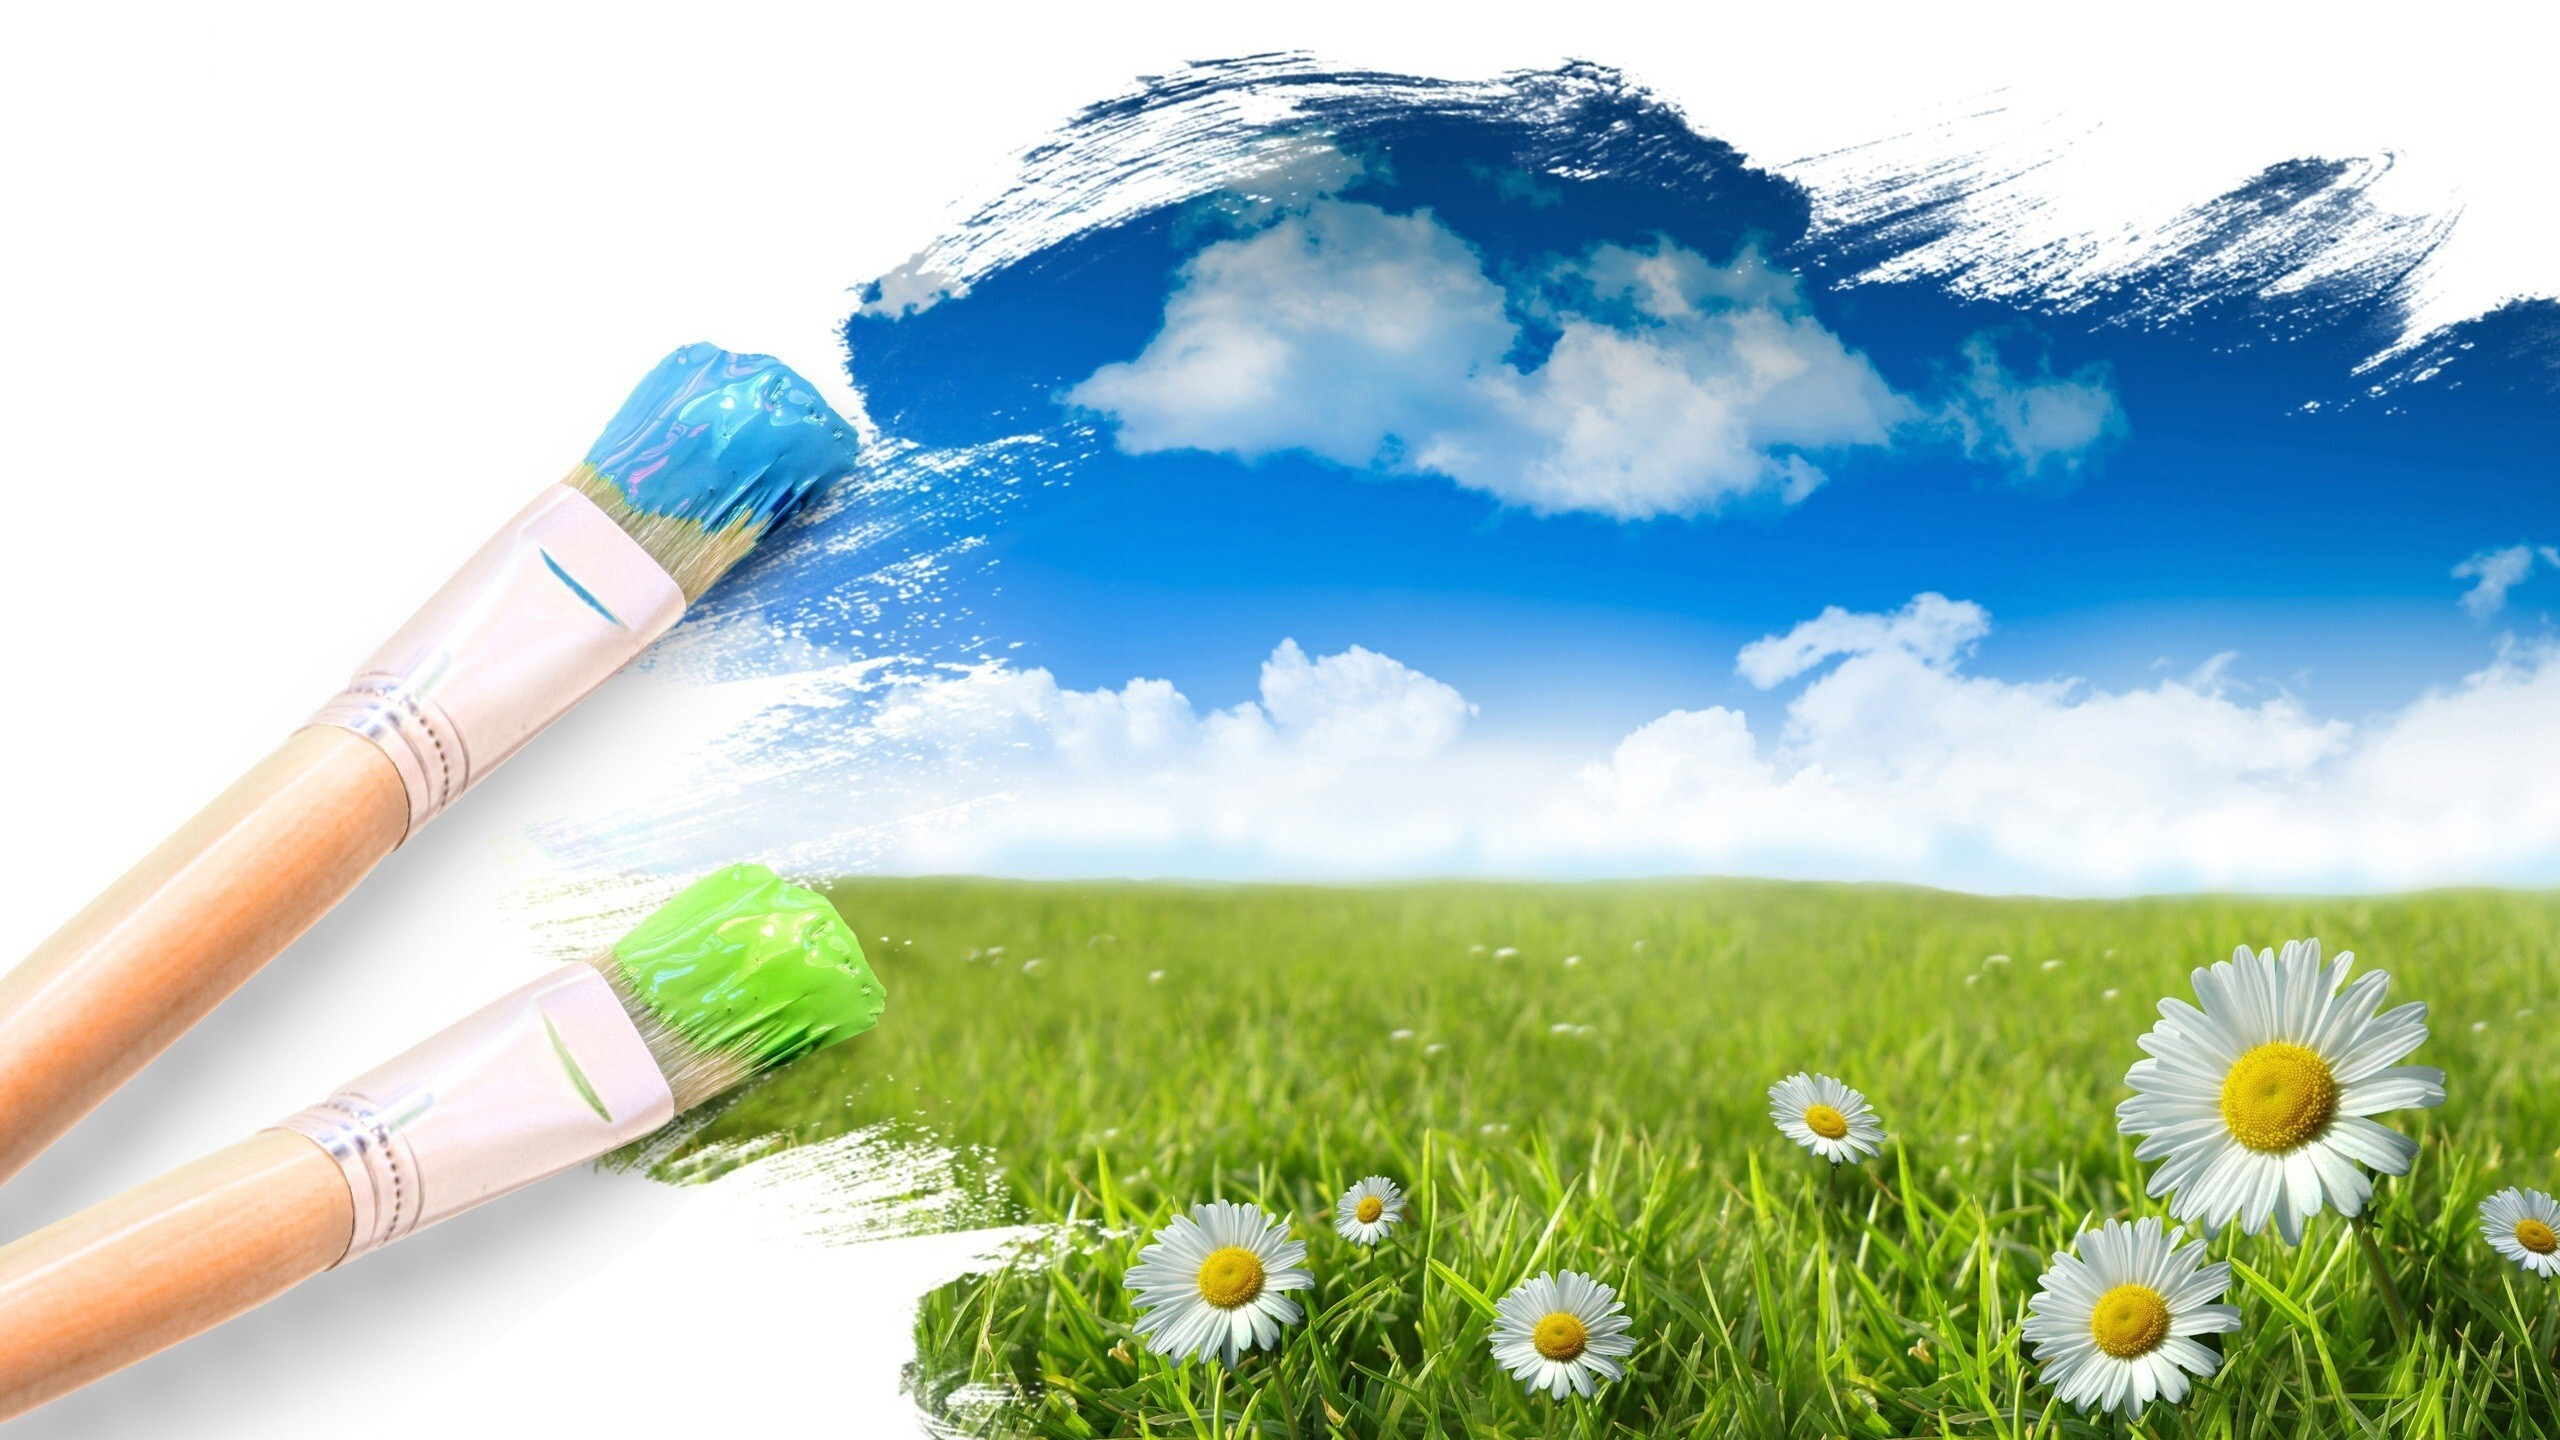 creative nature wallpapers brush backgrounds painting hd artistic natural creating